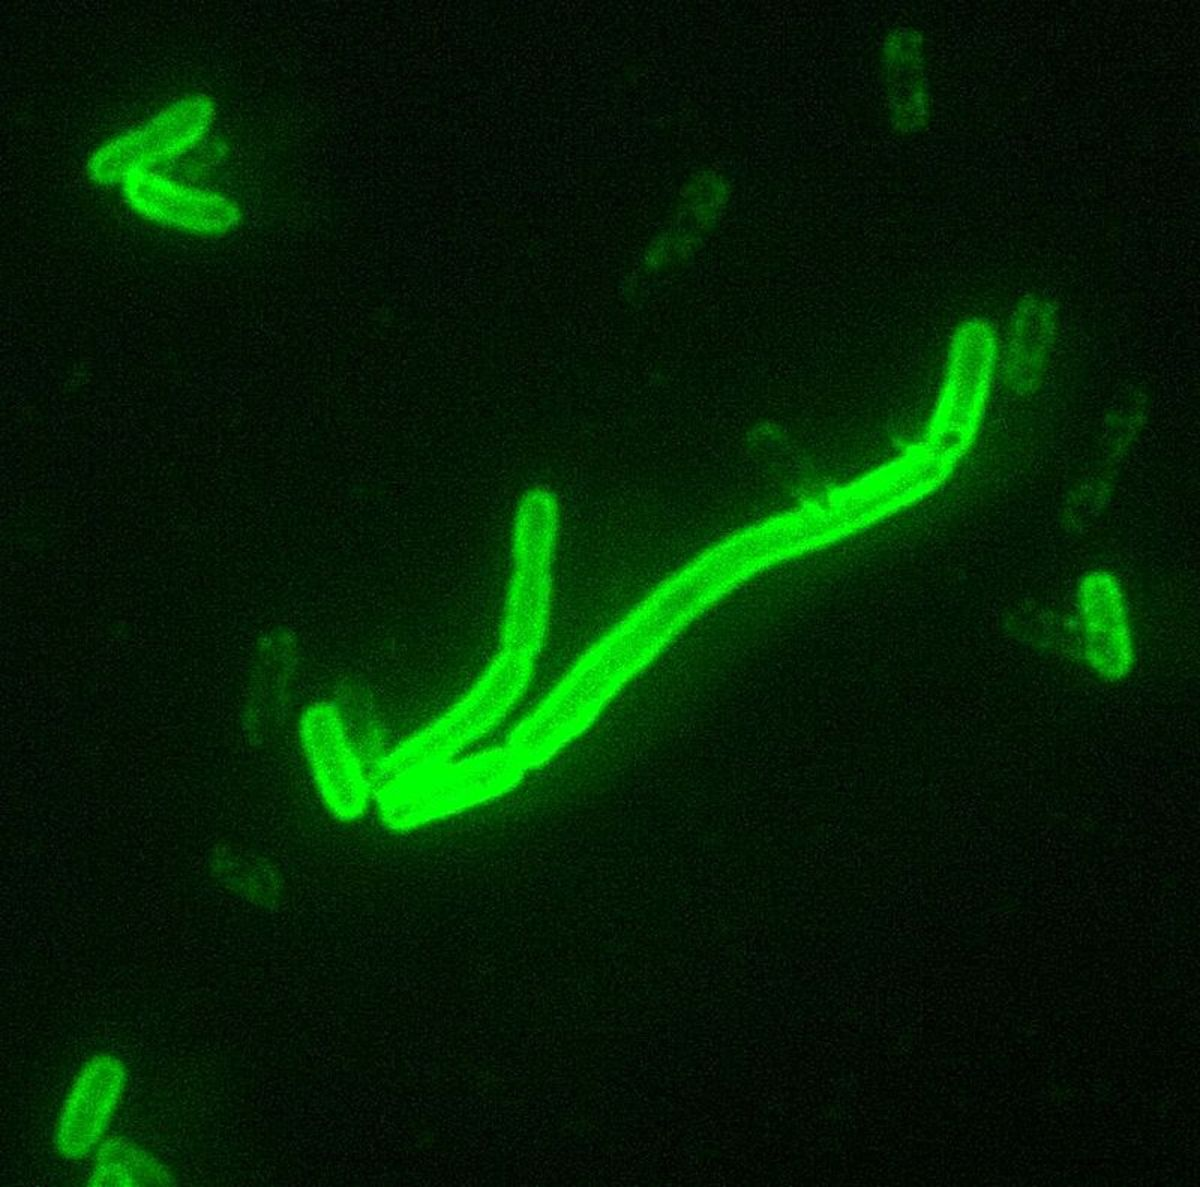 Yersinia pestis viewed with fluorescent lighting (bacteria responsible for the Black Death).